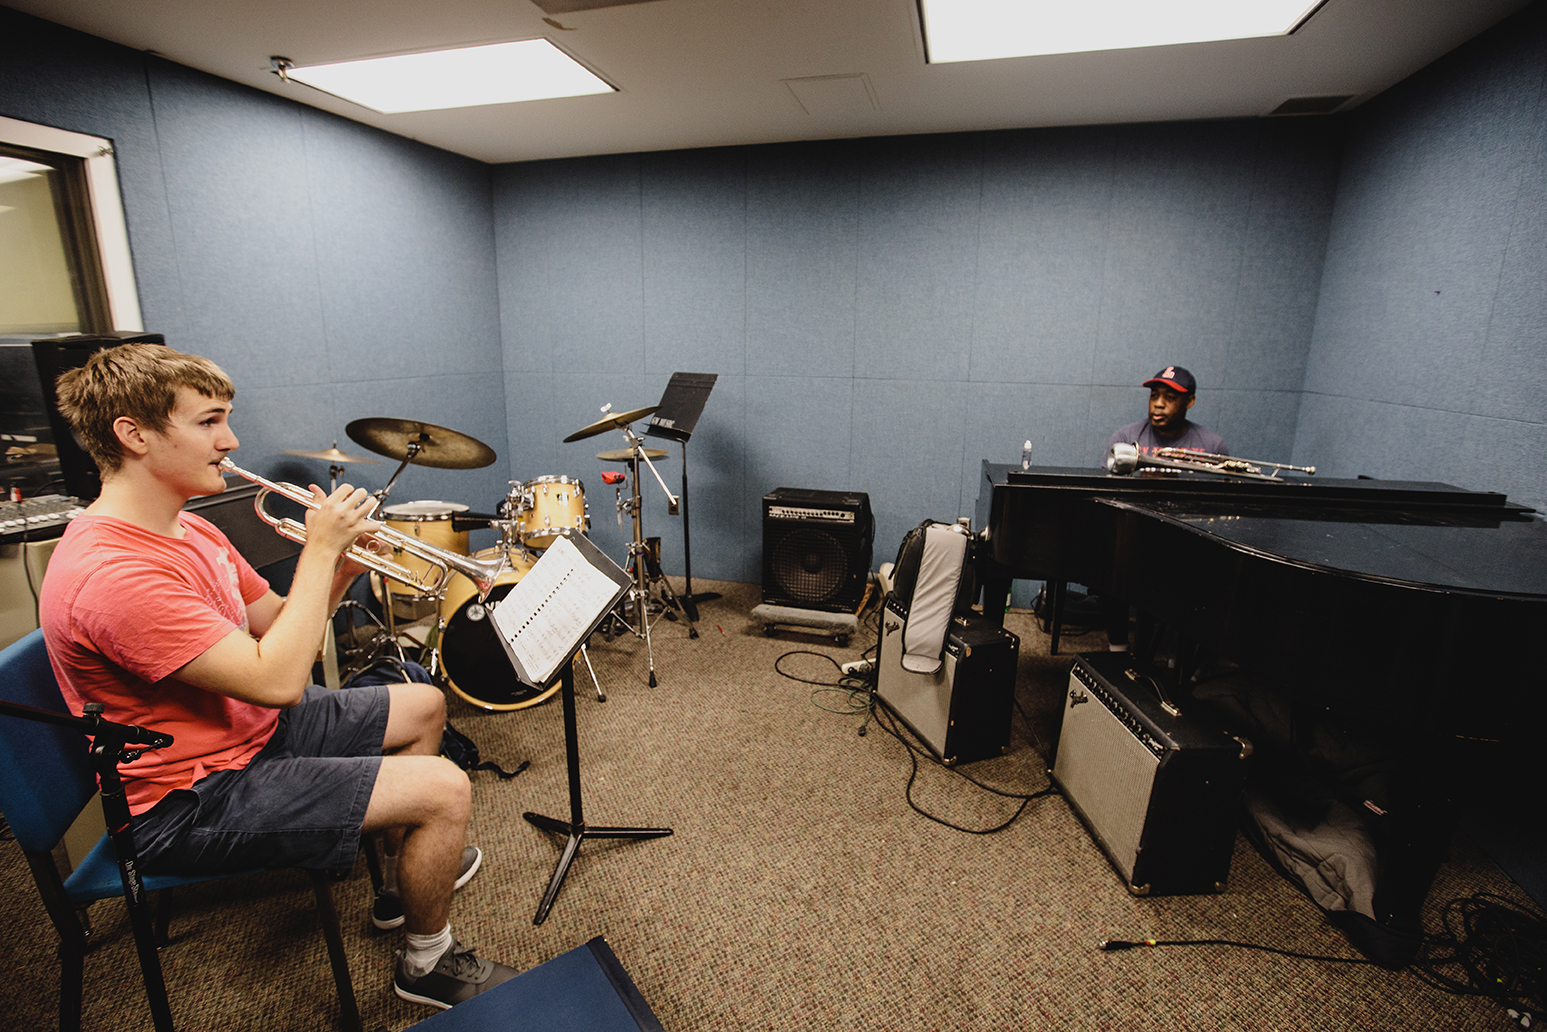 Student plays trombone while instructor supervises